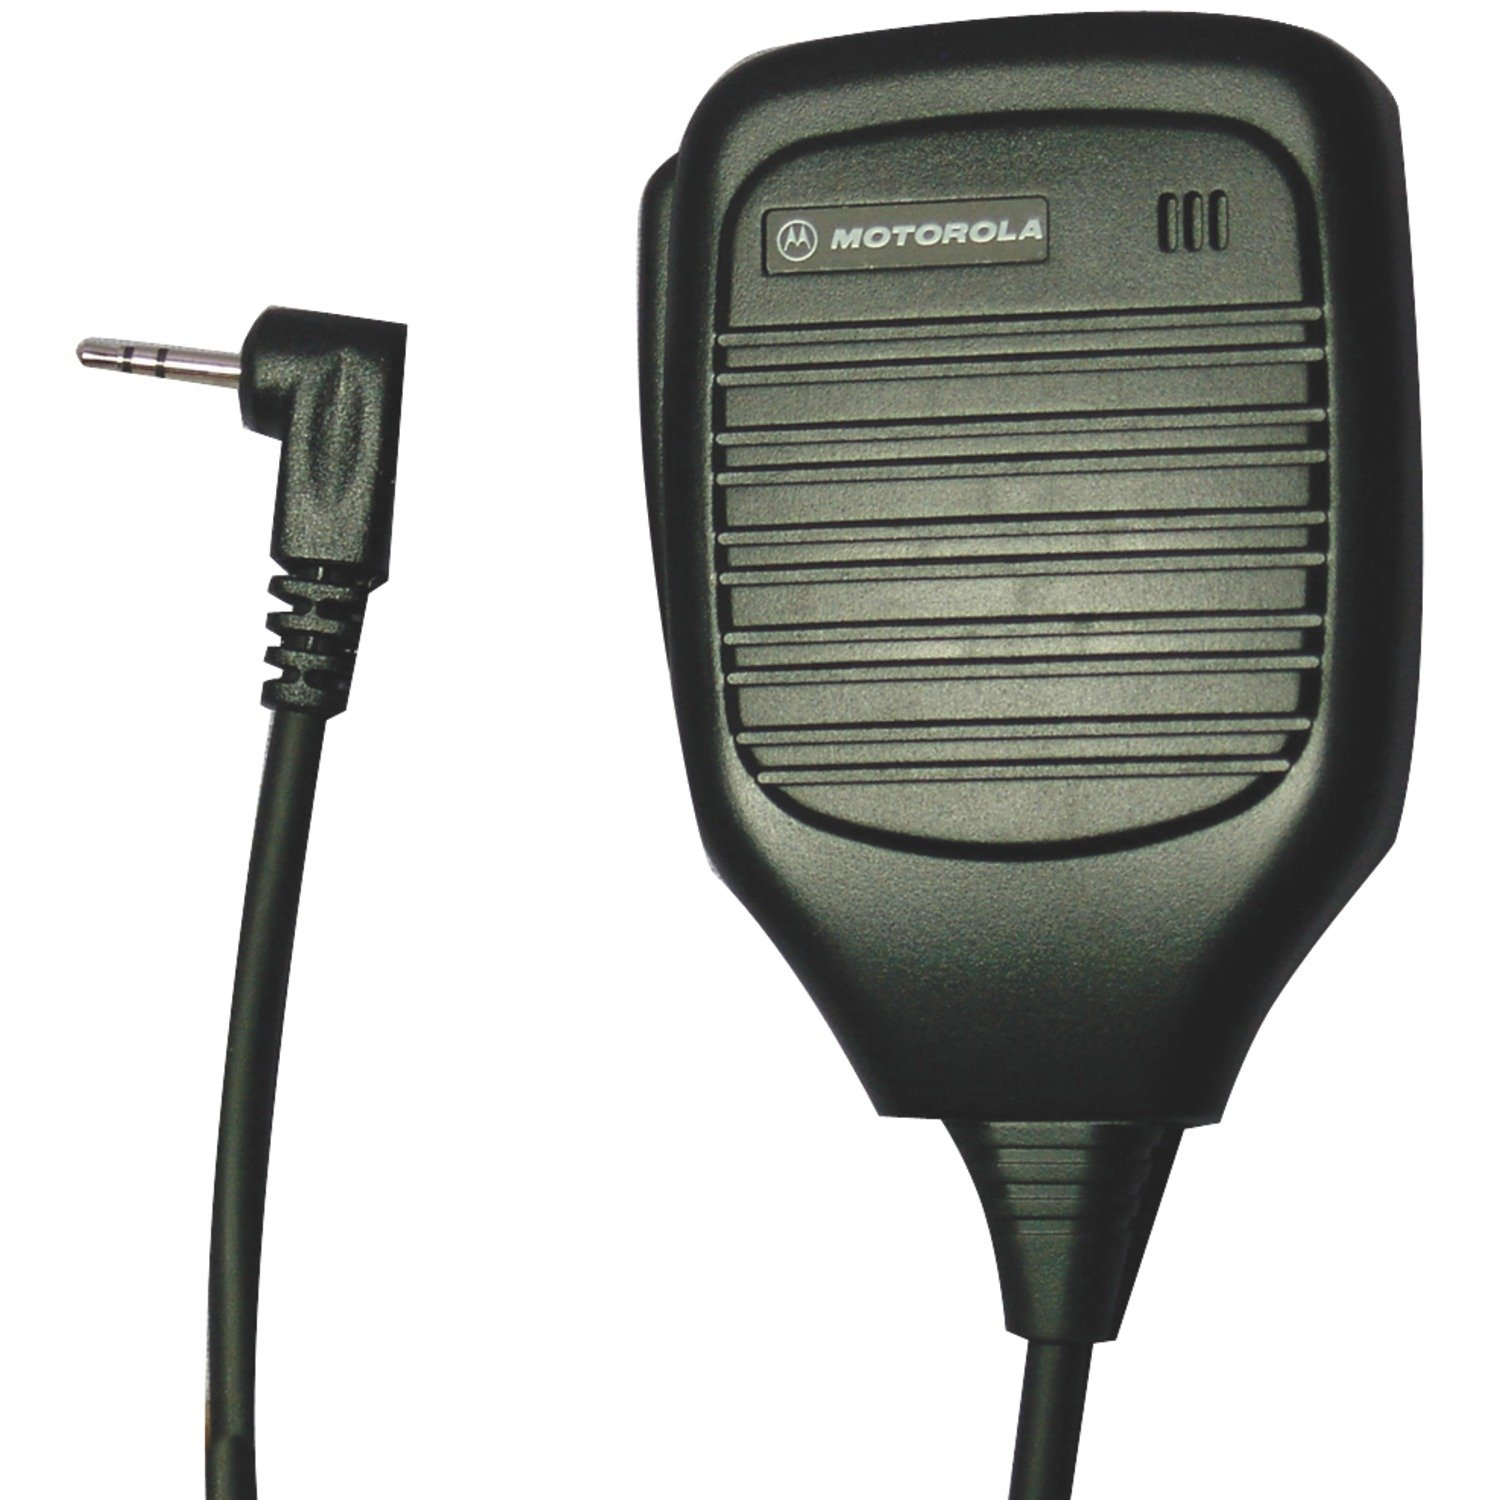 Motorola 53724 Remote Speaker with Microphone